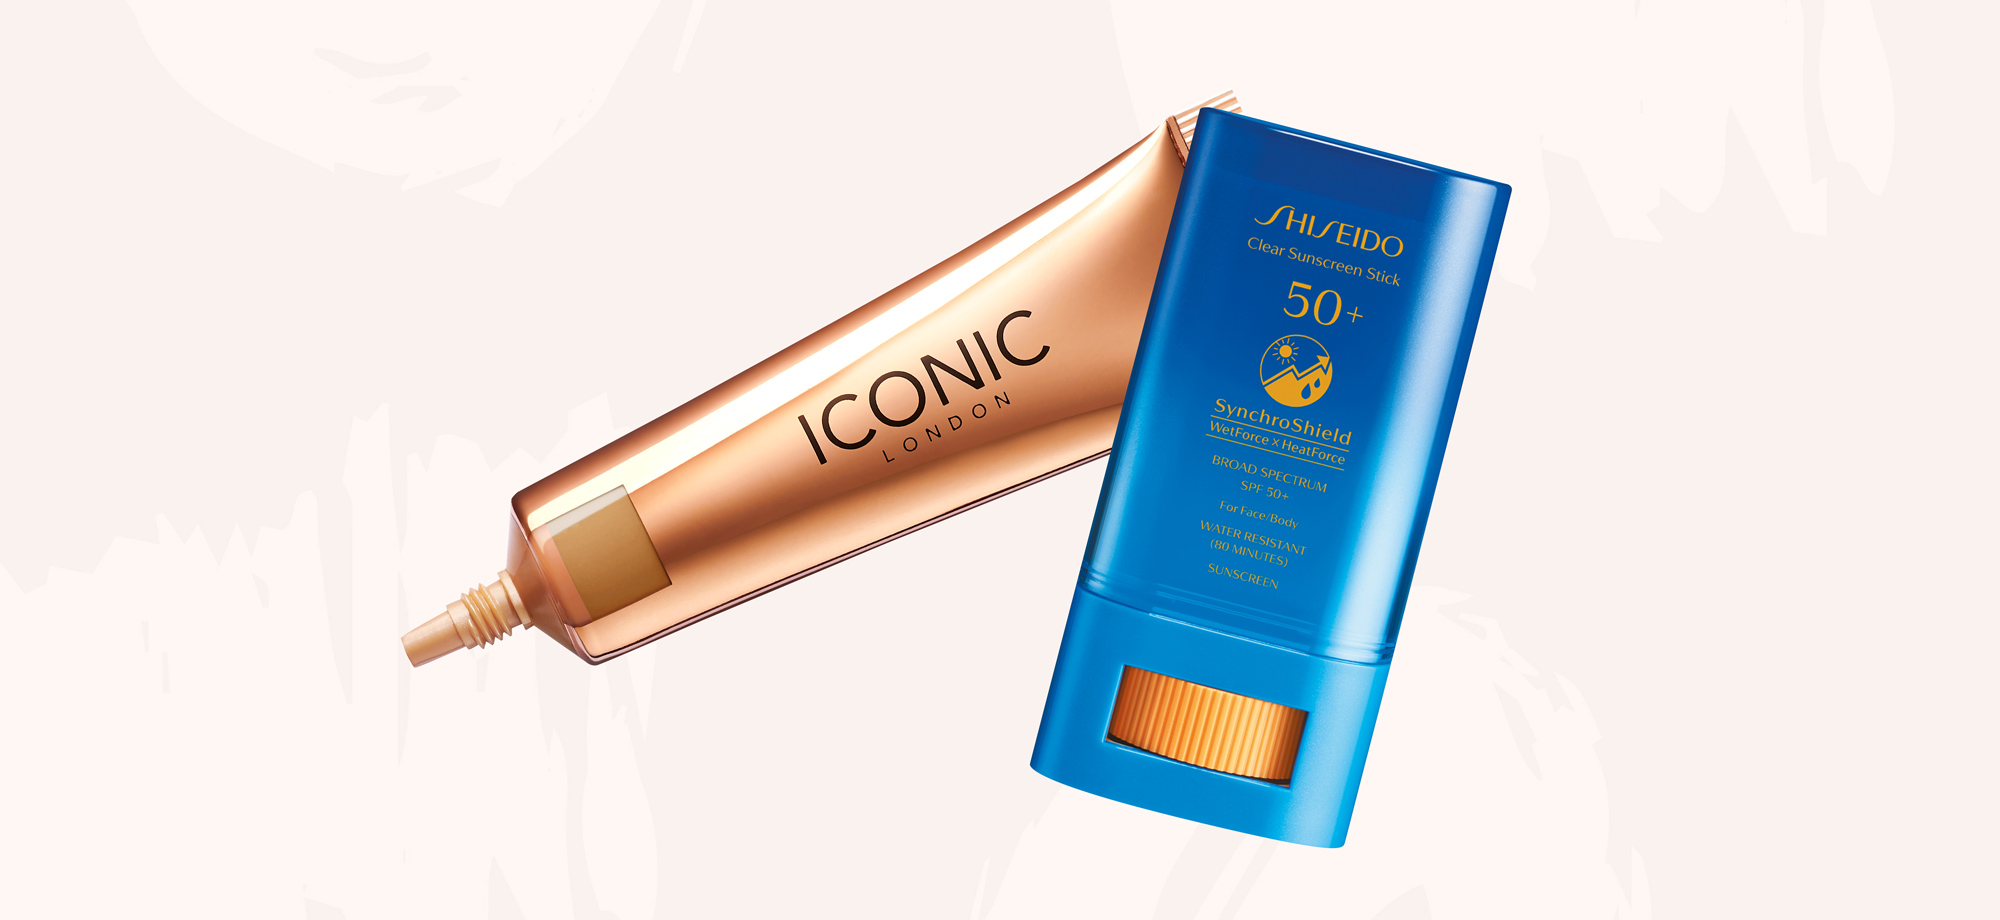 Iconic London with Shiseido Clear Sunscreen Stick 50+ SPF